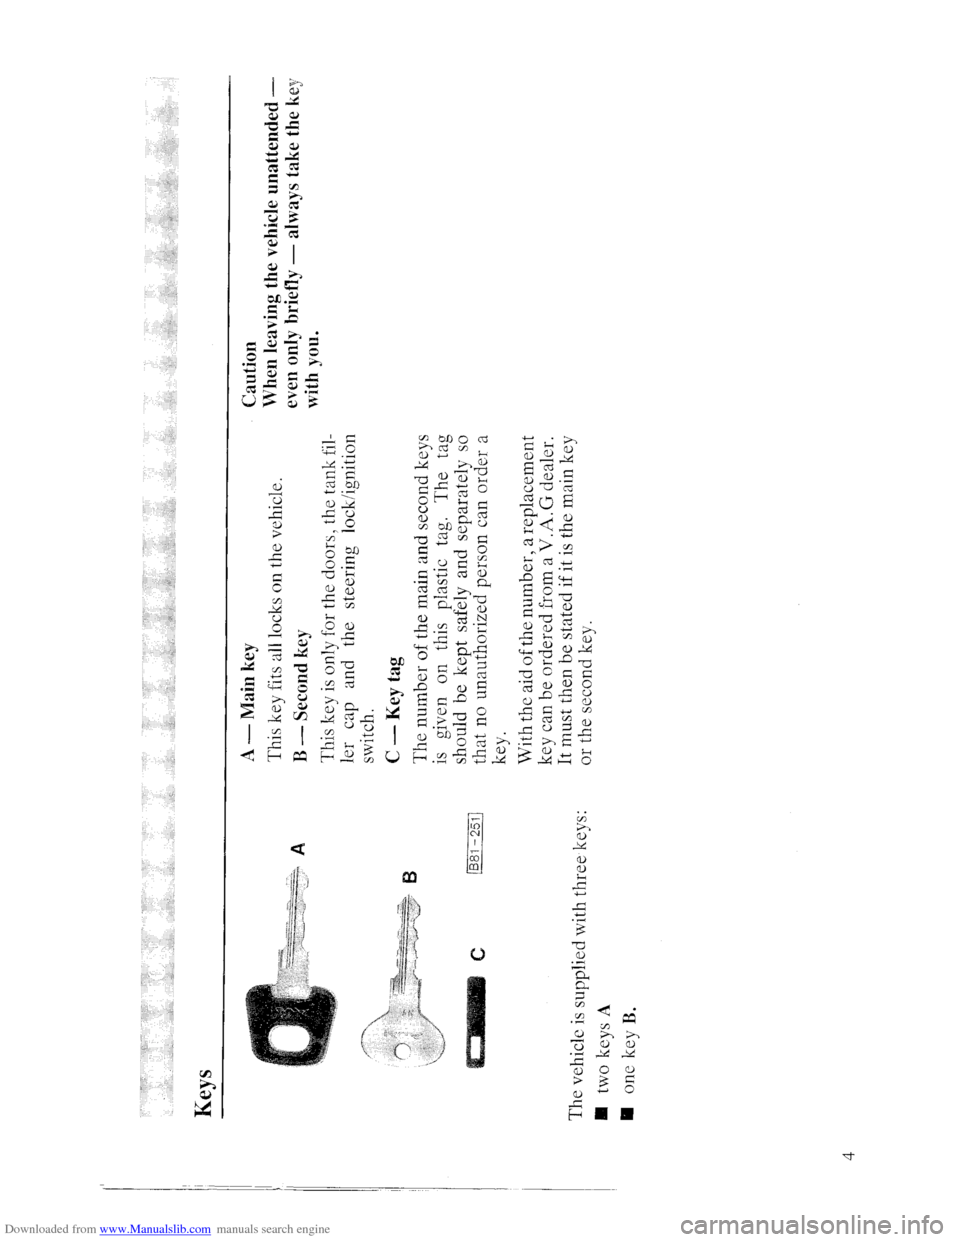 AUDI QUATTRO 1985 85 Owners Manual (46 Pages)